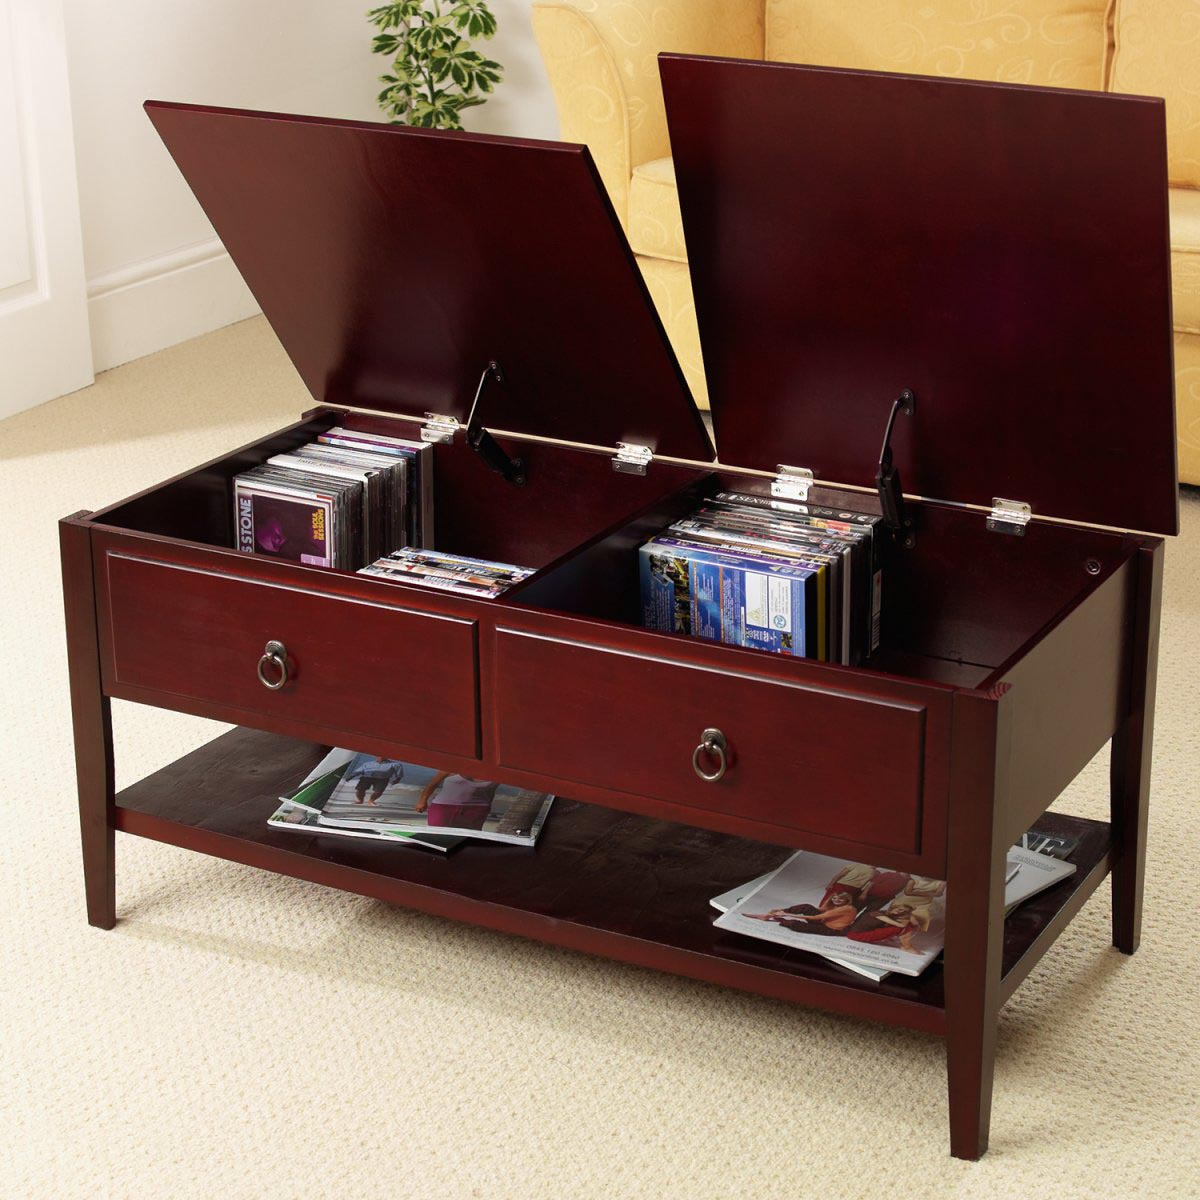 mahogany coffee tables with storage | coffee table design ideas